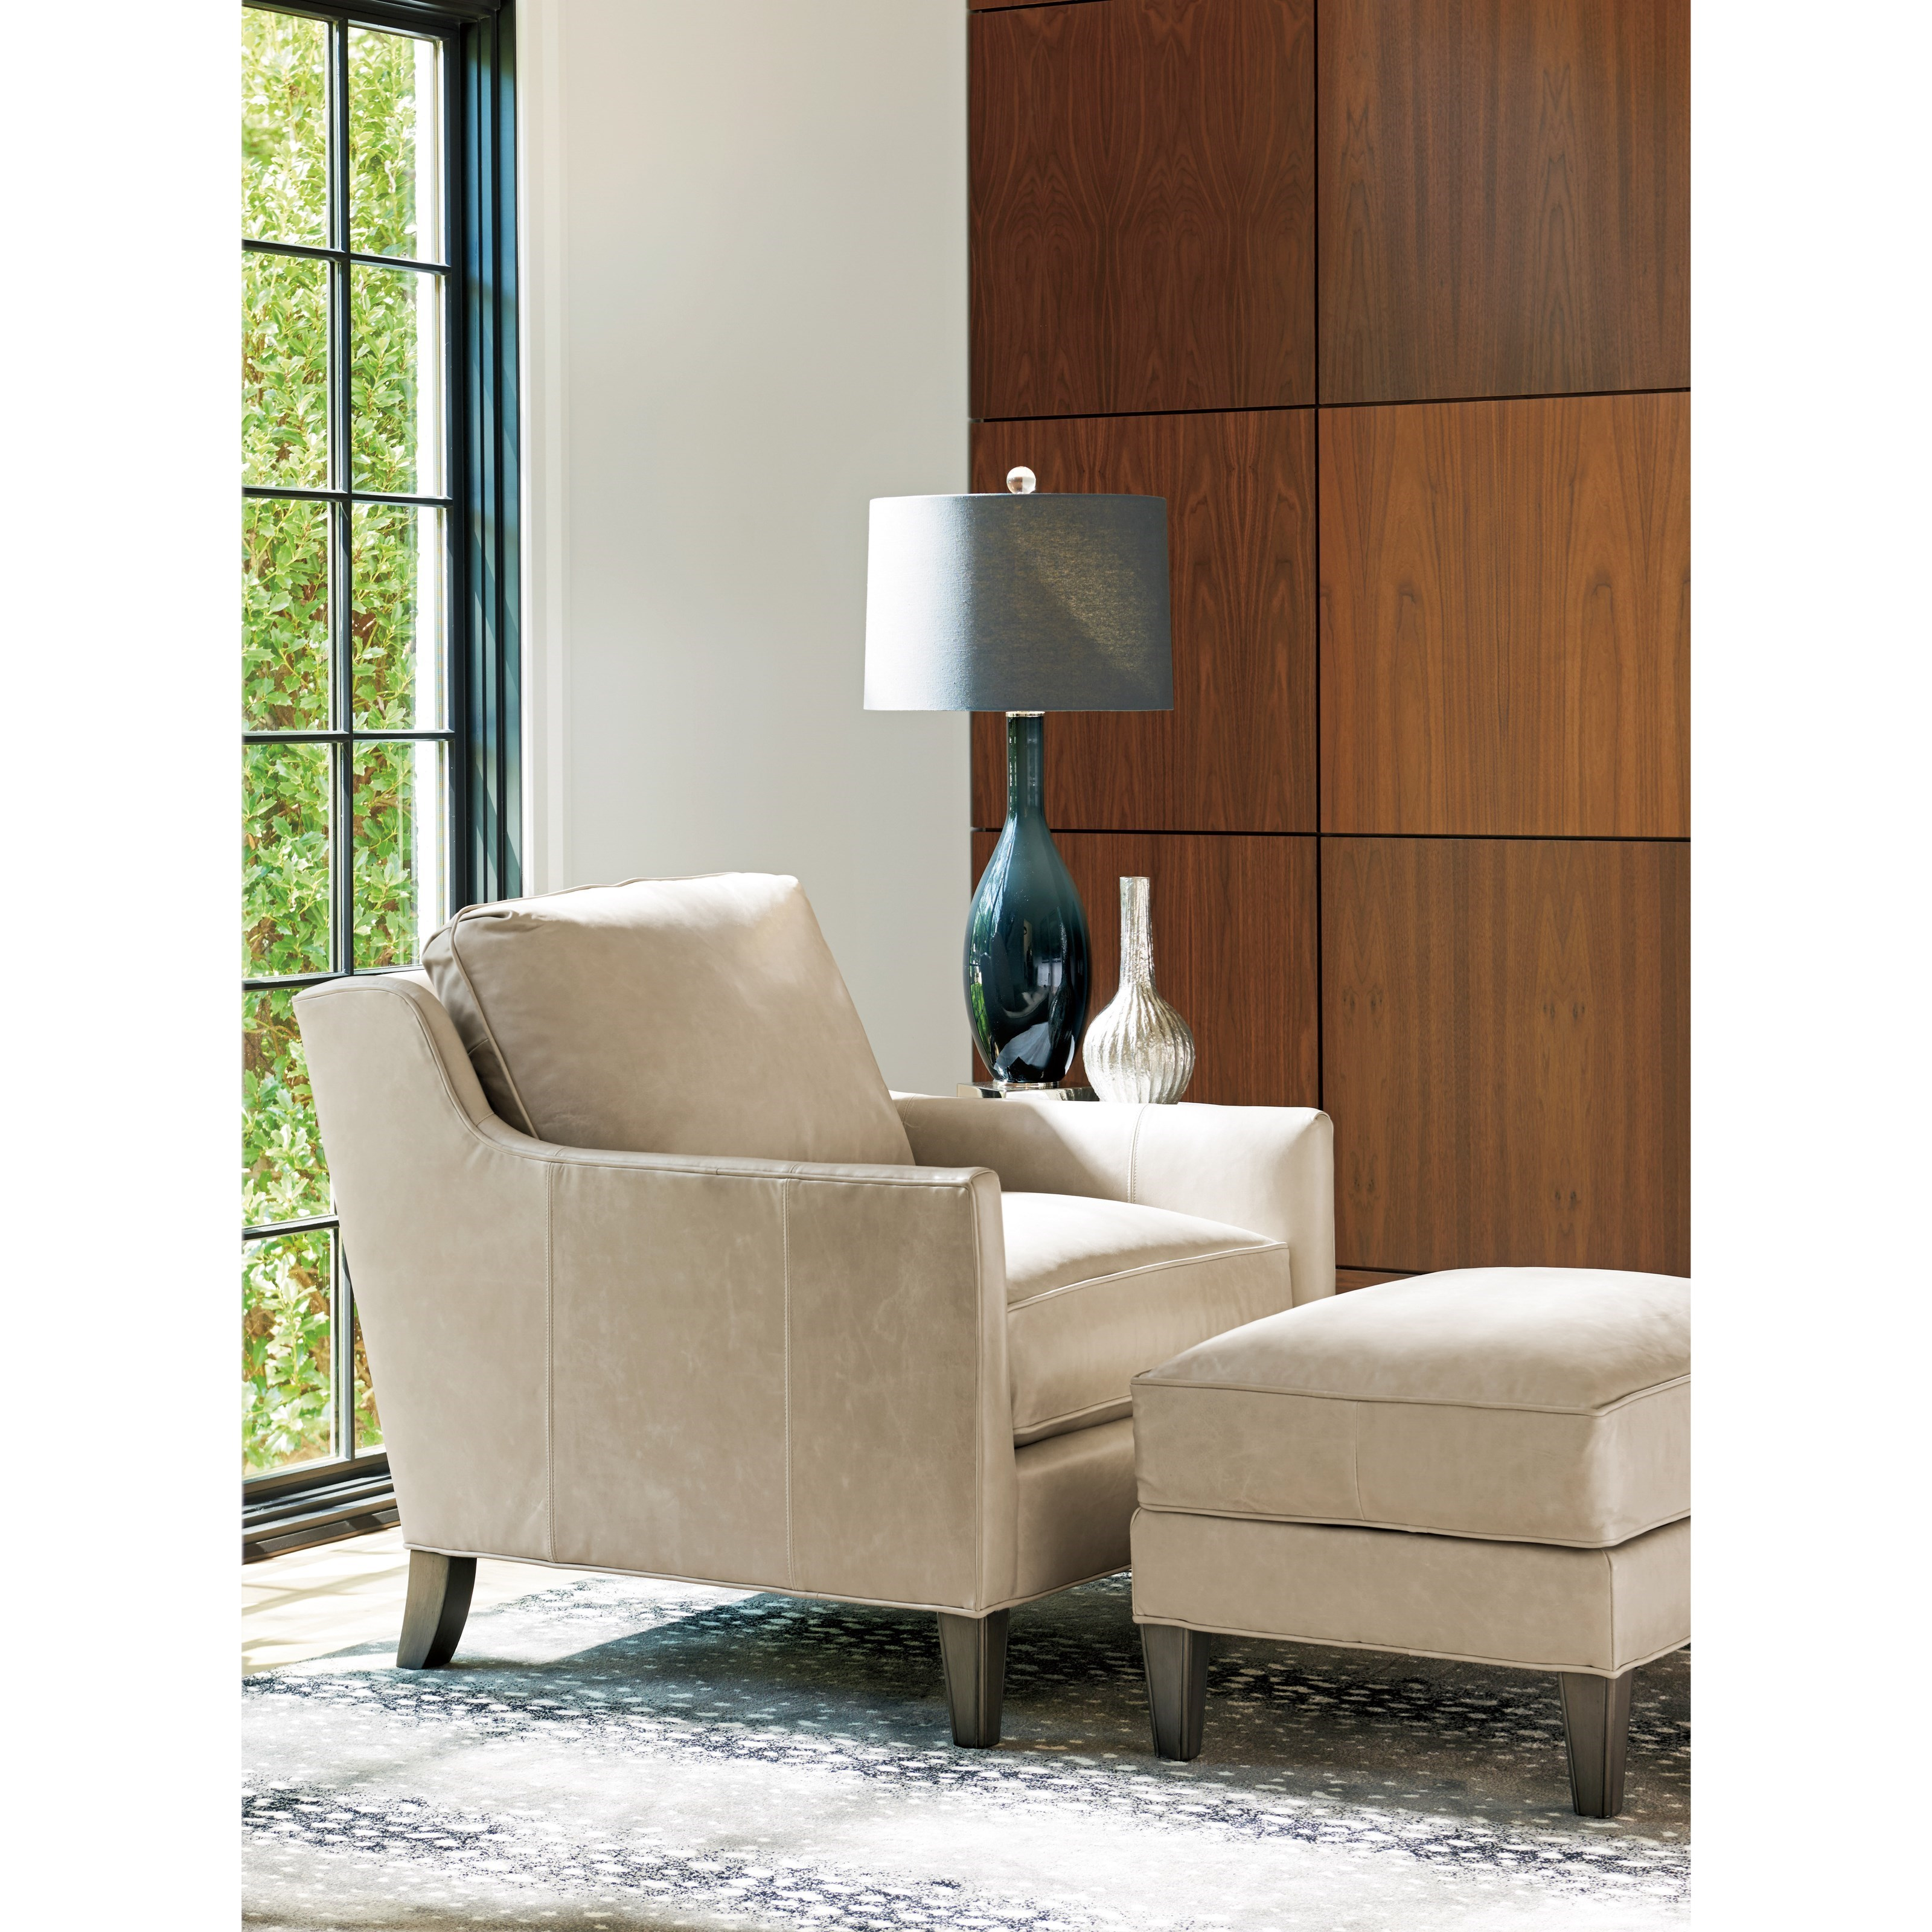 Lexington Ariana Ll7716 11 Turin Contemporary Chair Baer